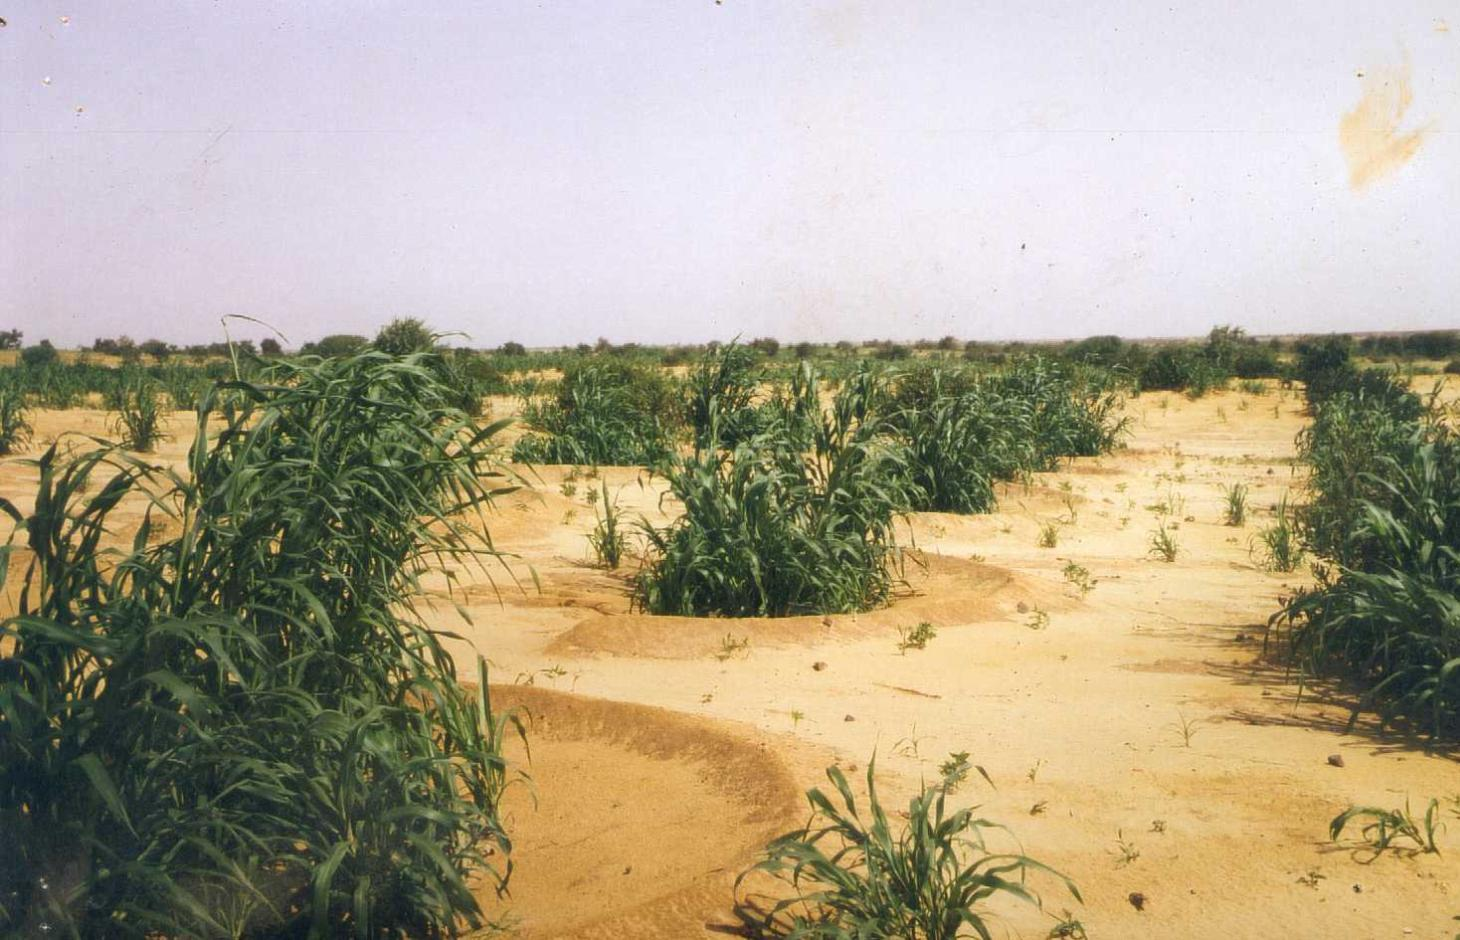 Semi-circular bunds with millet growing in them